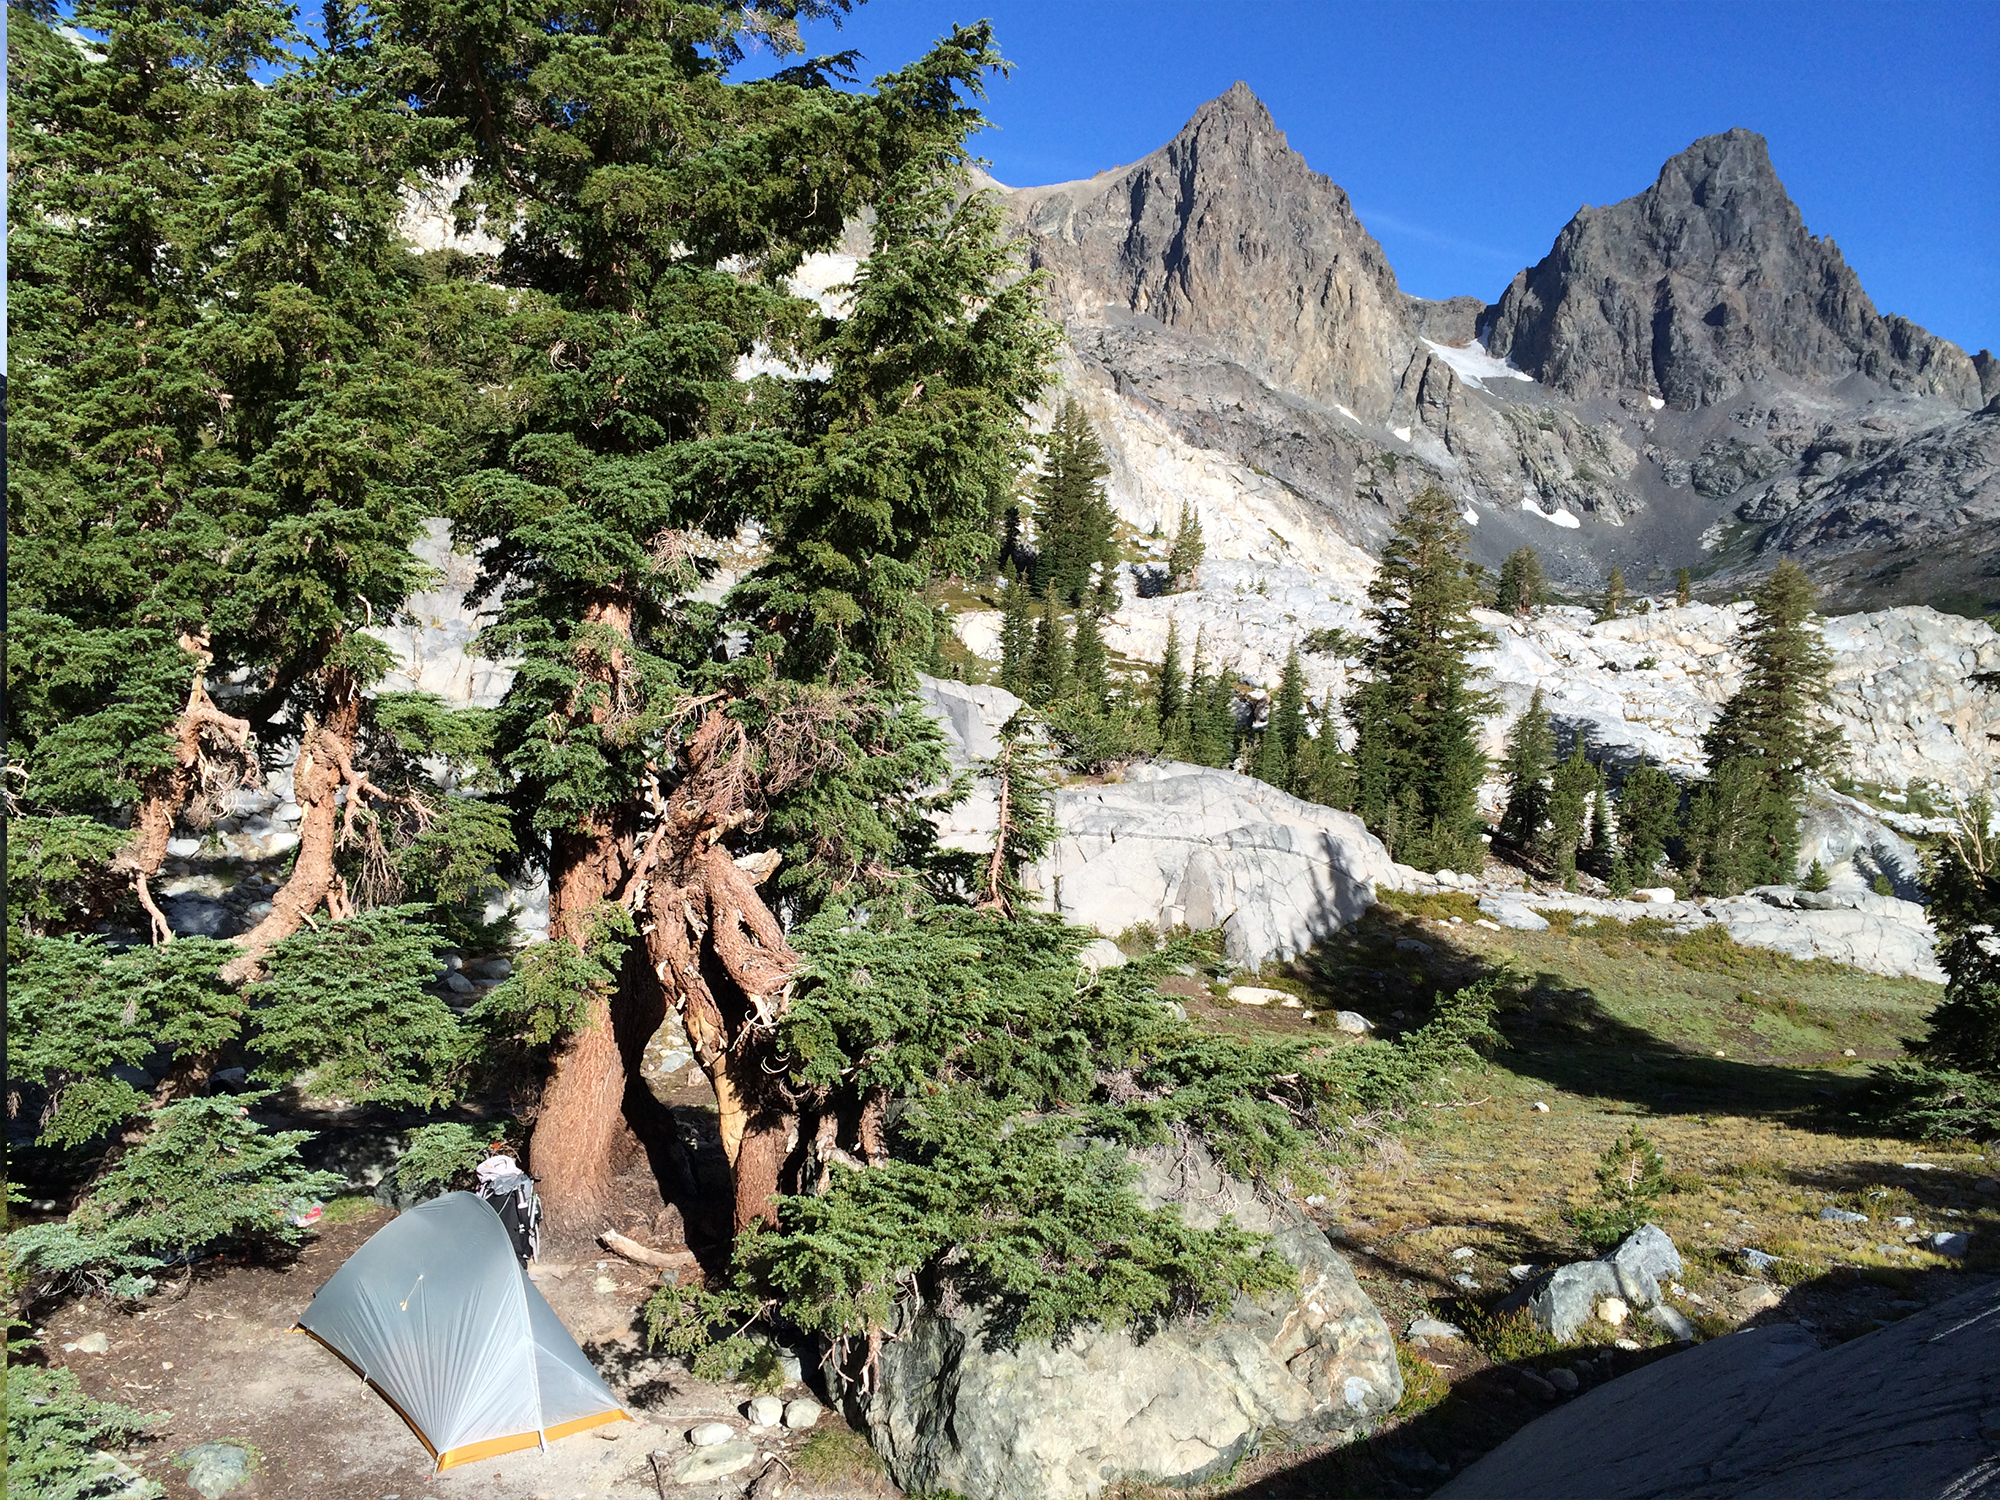 4xpedition backpacking John Muir Trail